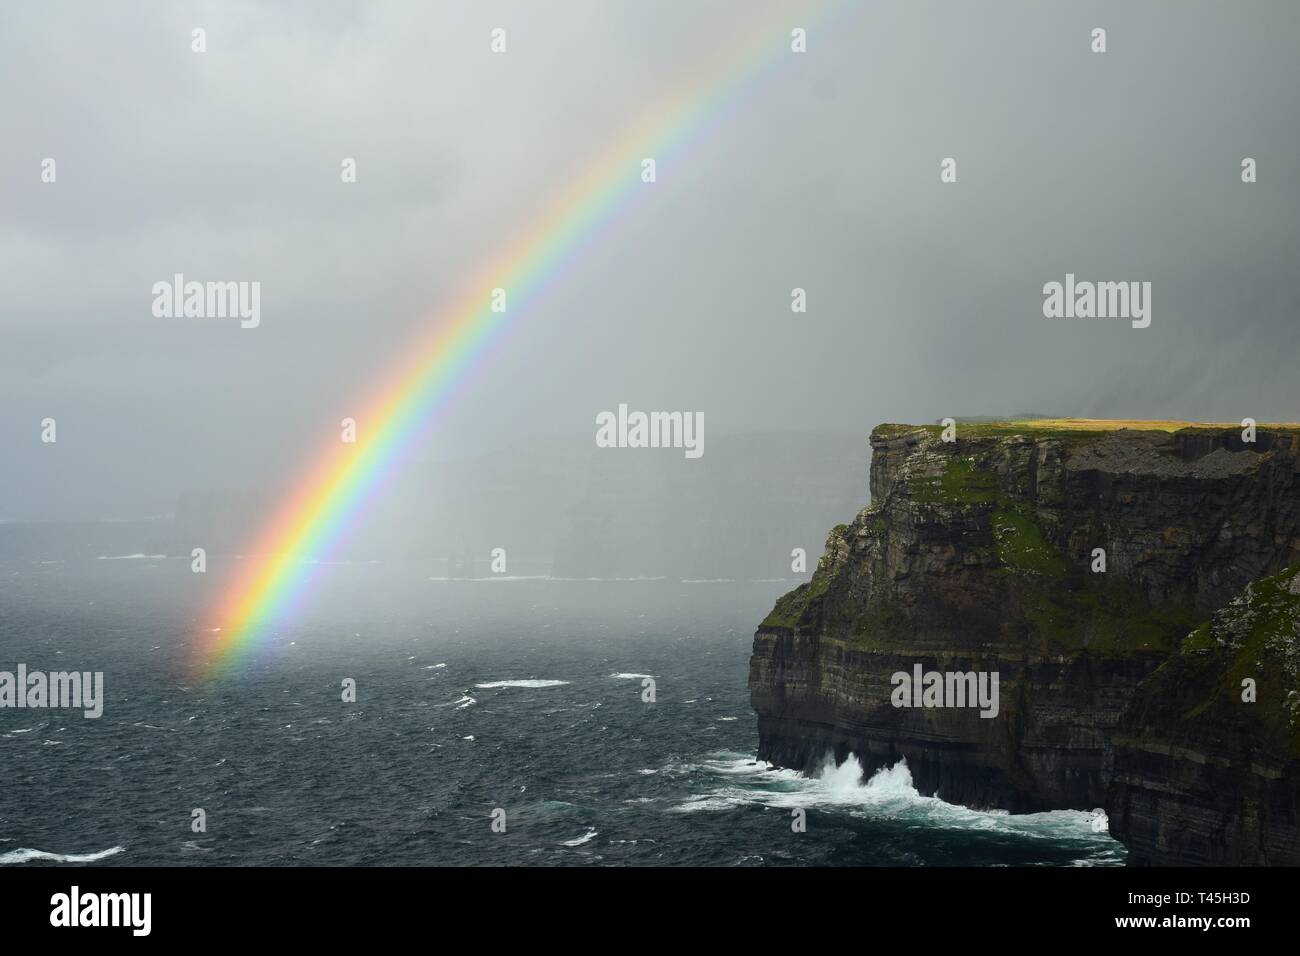 A colorful rainbow over the Cliffs of Moher on the west coast of Ireland in County Clare. - Stock Image